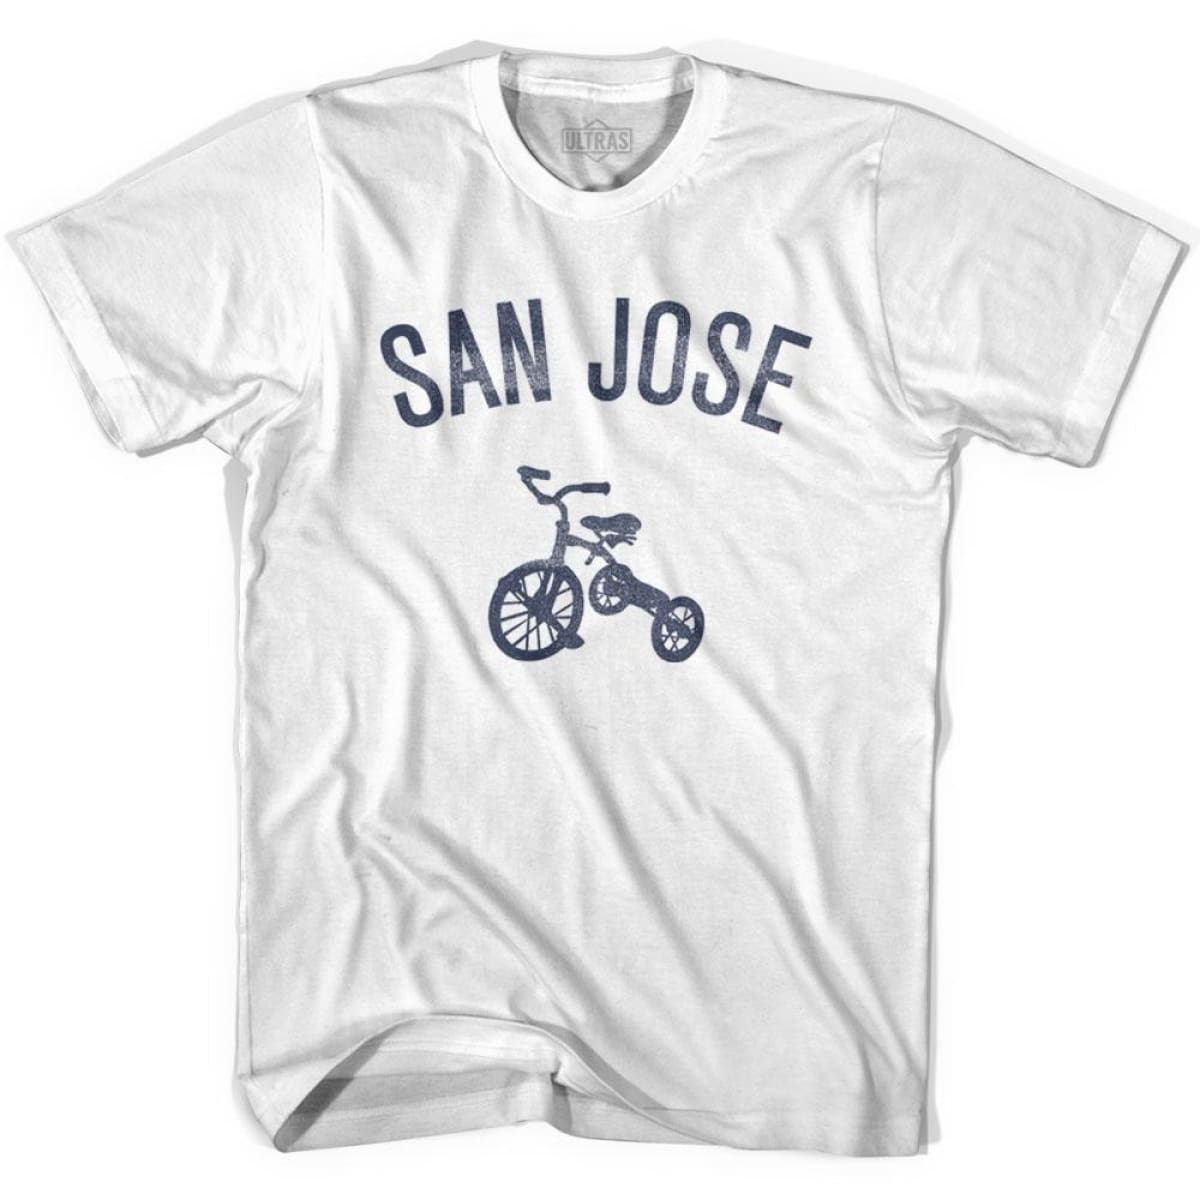 San Jose City Tricycle Womens Cotton T-shirt - Tricycle City